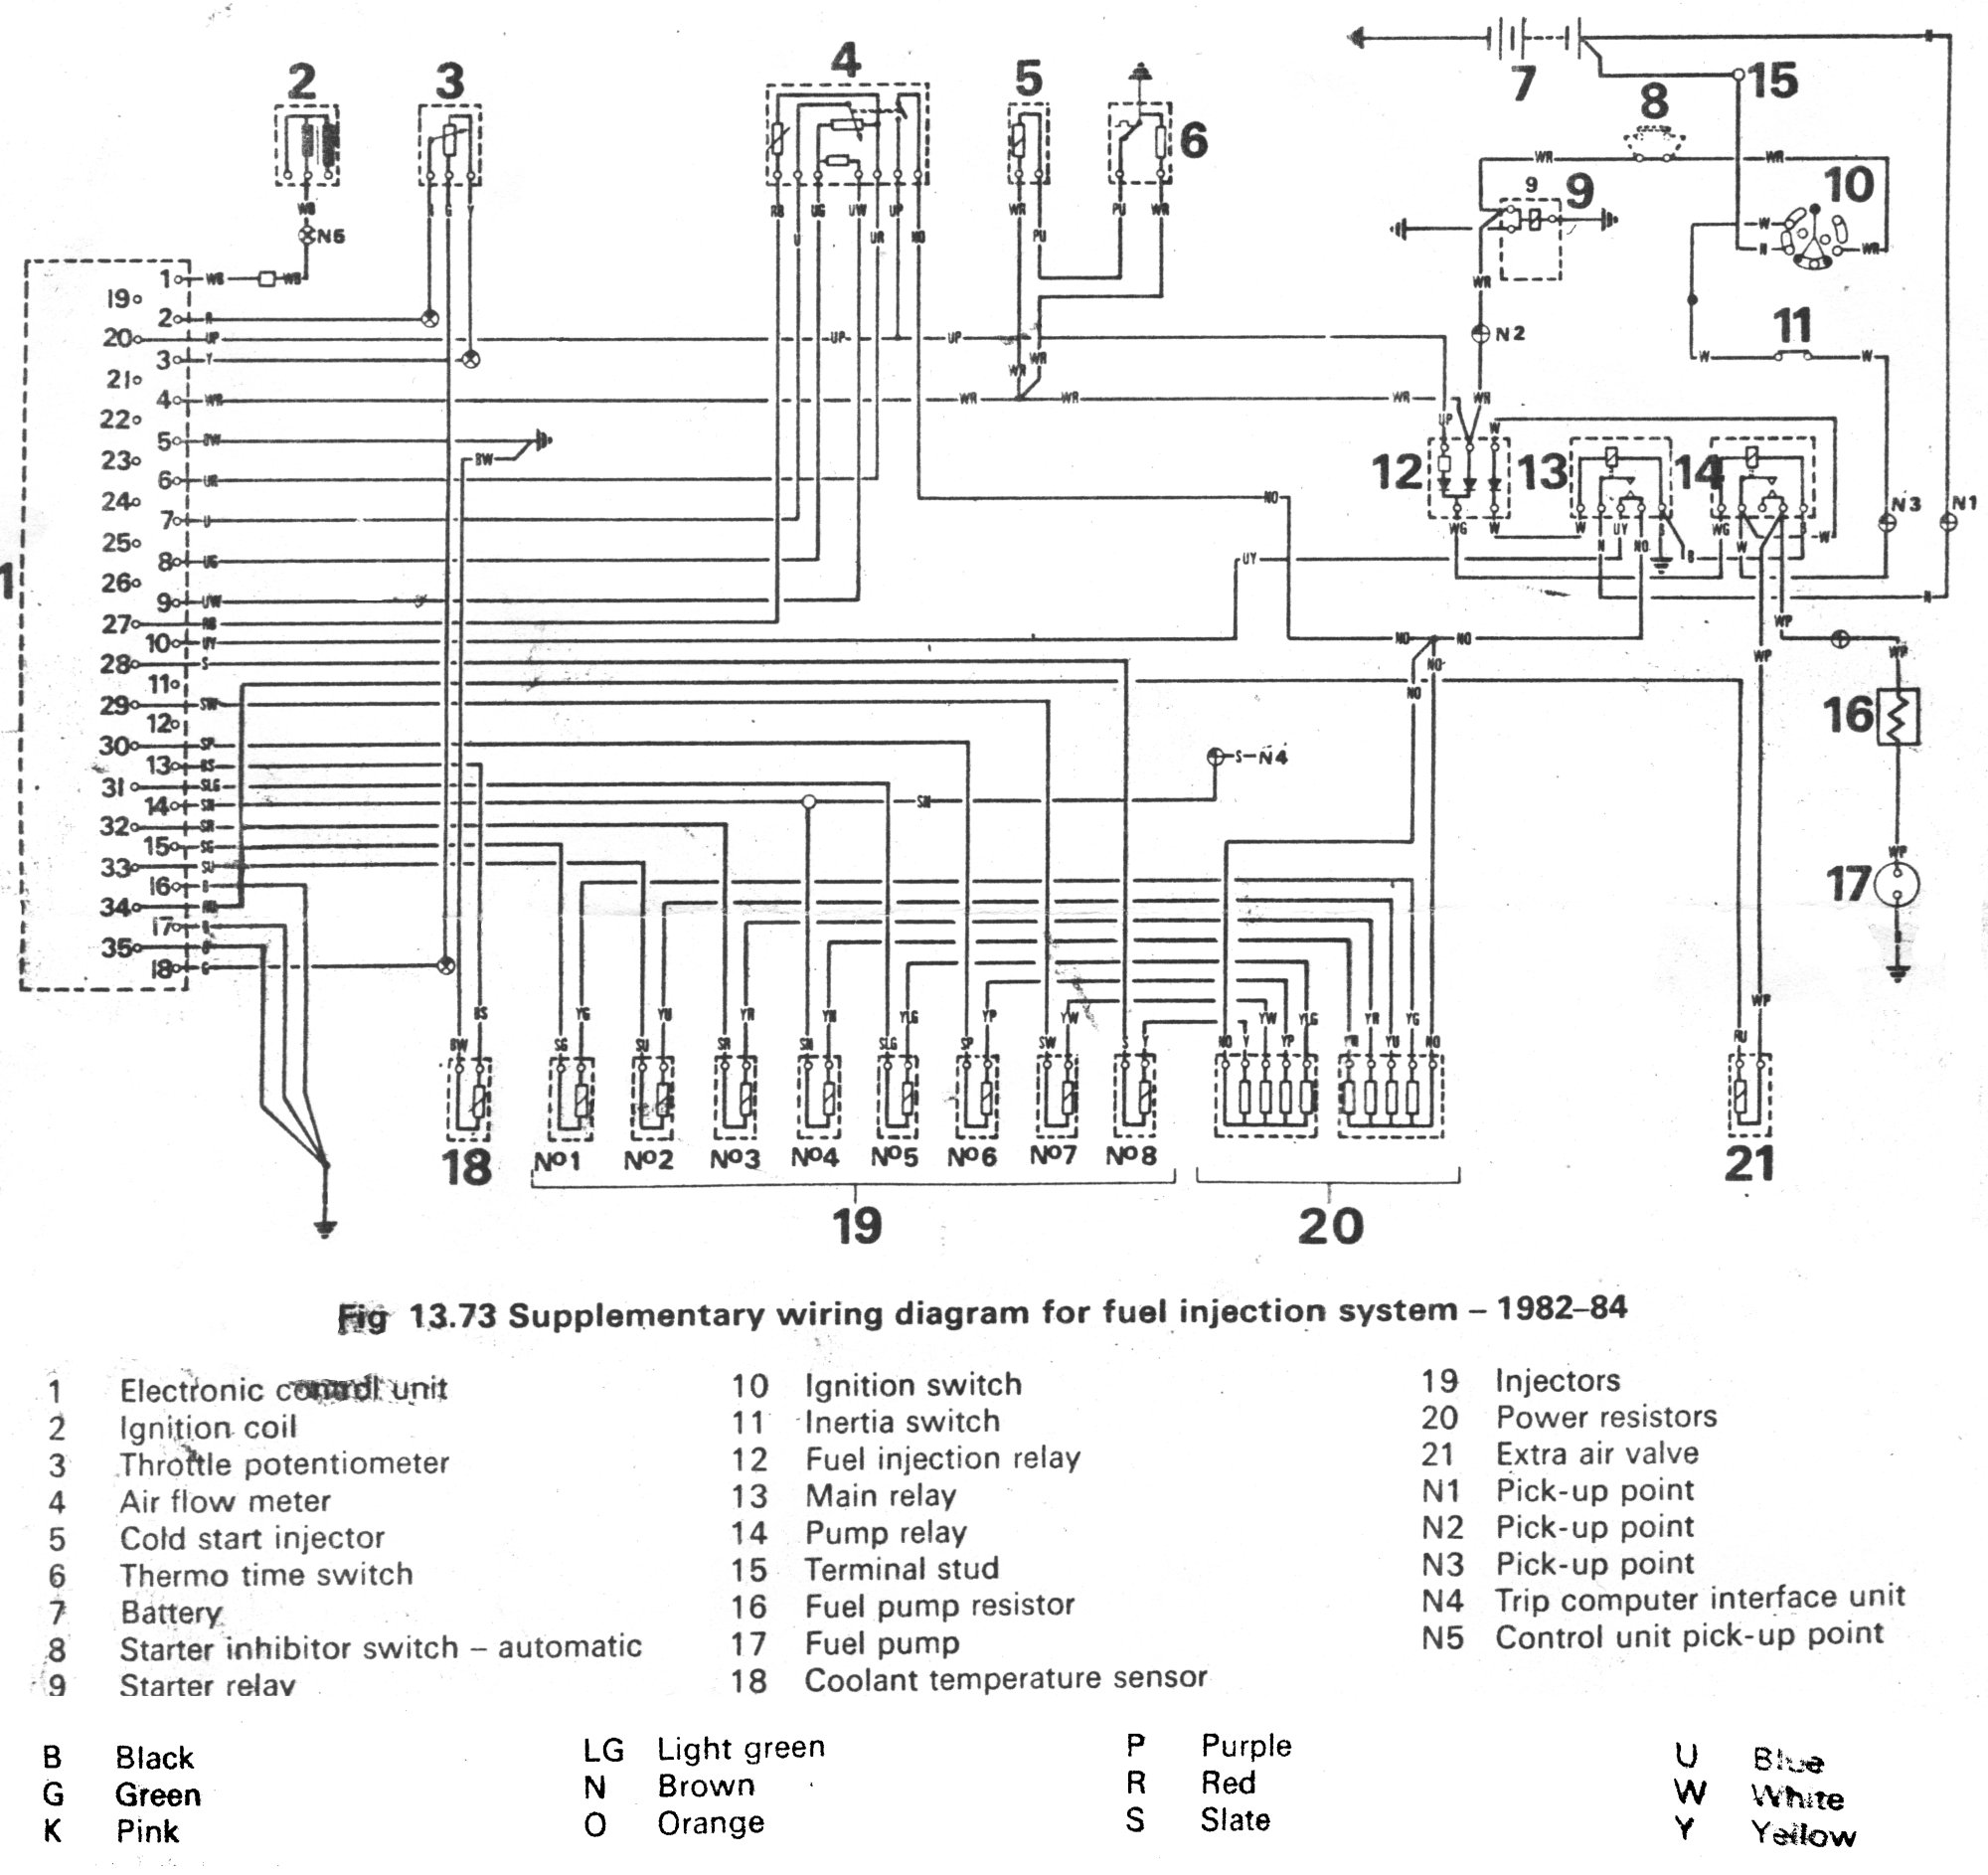 2000 Range Rover Engine Diagram Wiring Diagrams Schematic Ford Ranger Radio 1999 Library Hyundai